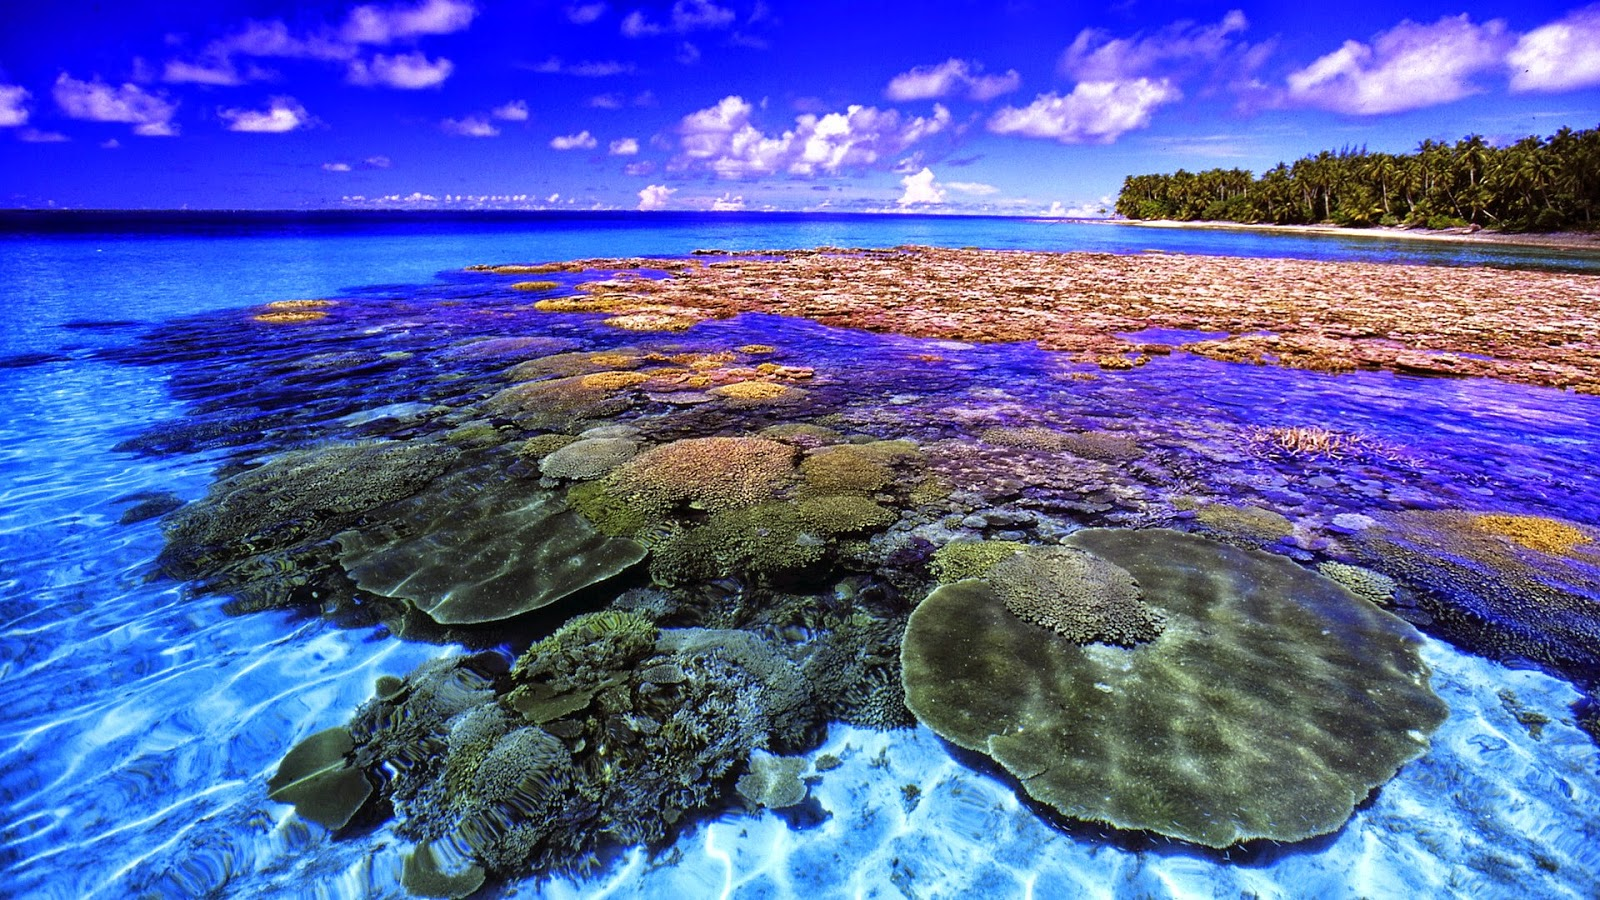 Coral Reef - HD Wallpapers   Earth Blog